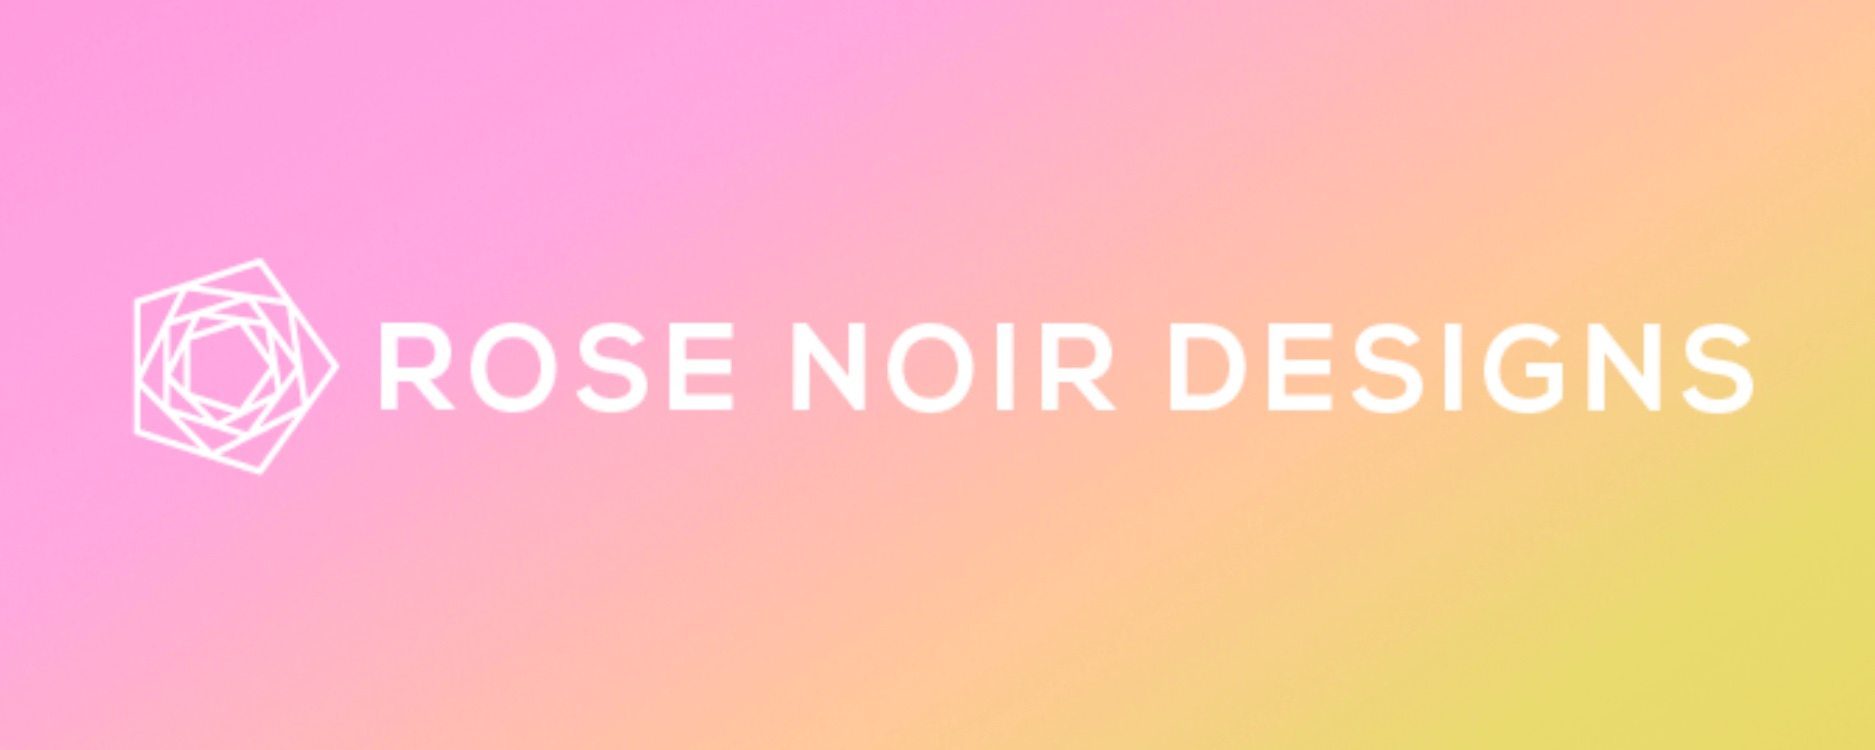 Rose Noir Designs